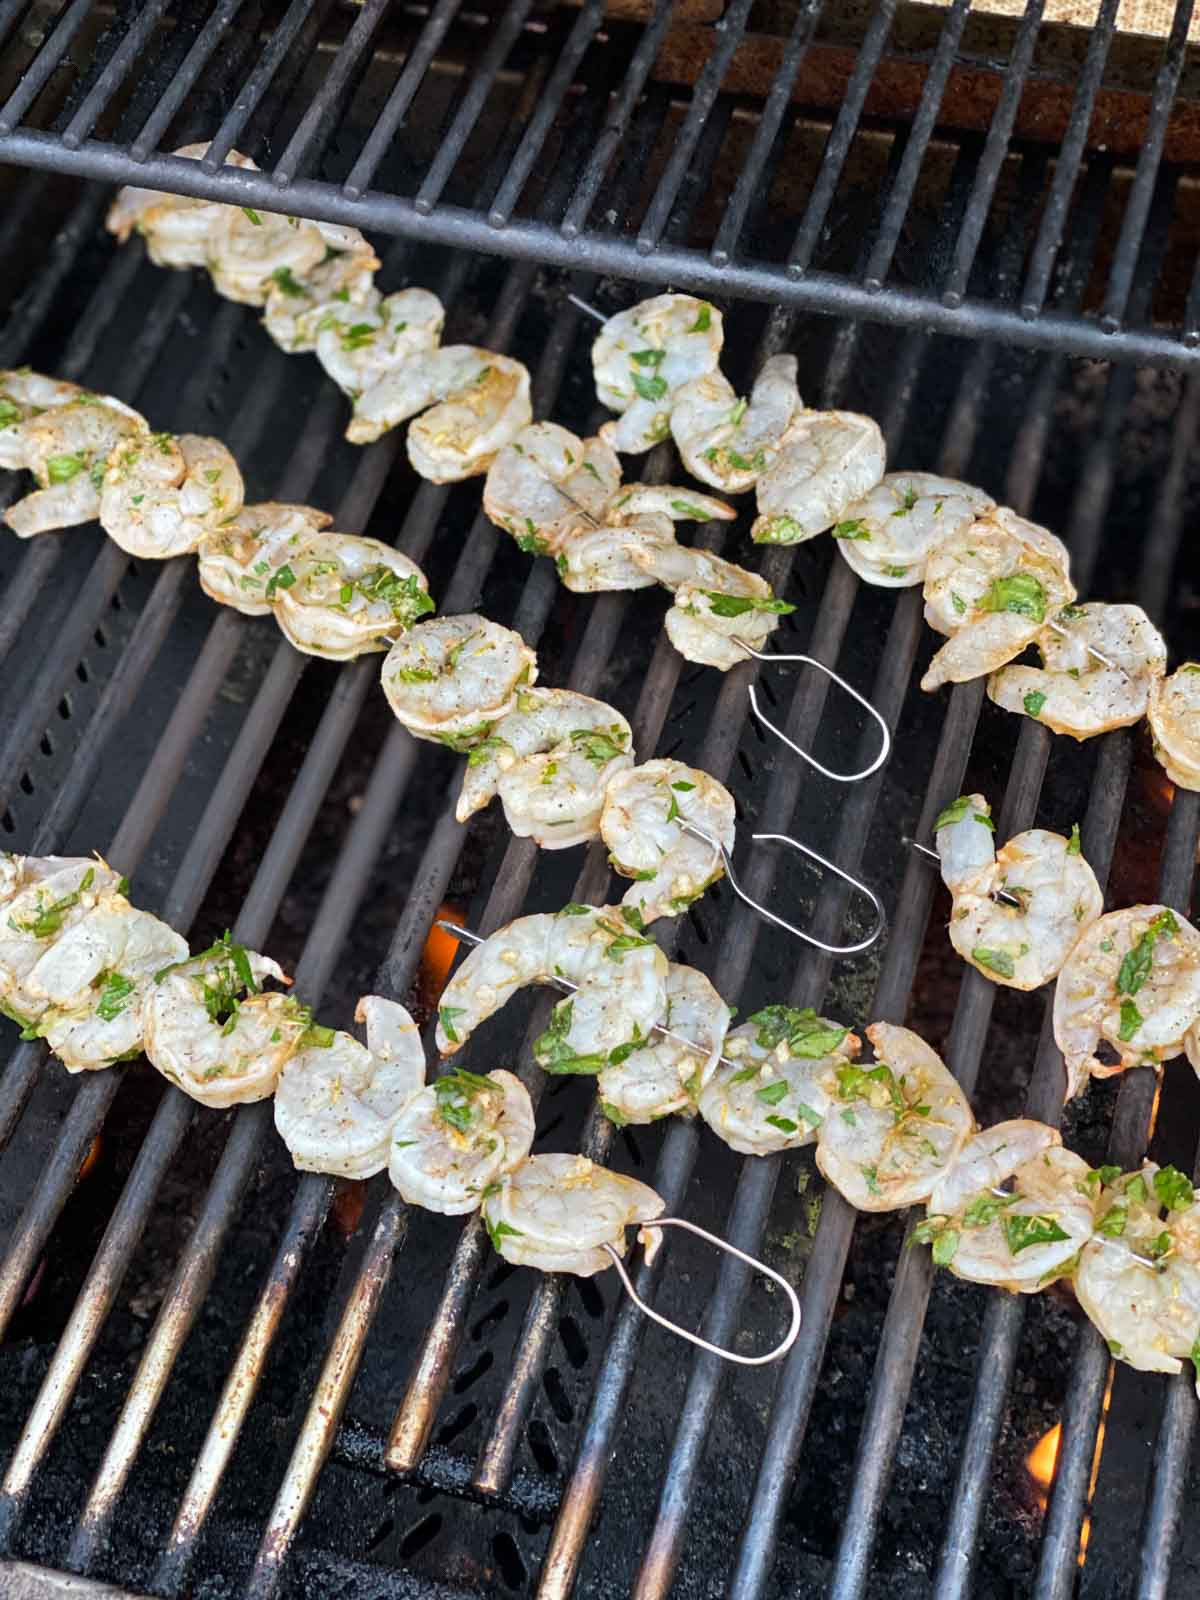 Raw shrimp on skewers on gas grill grates